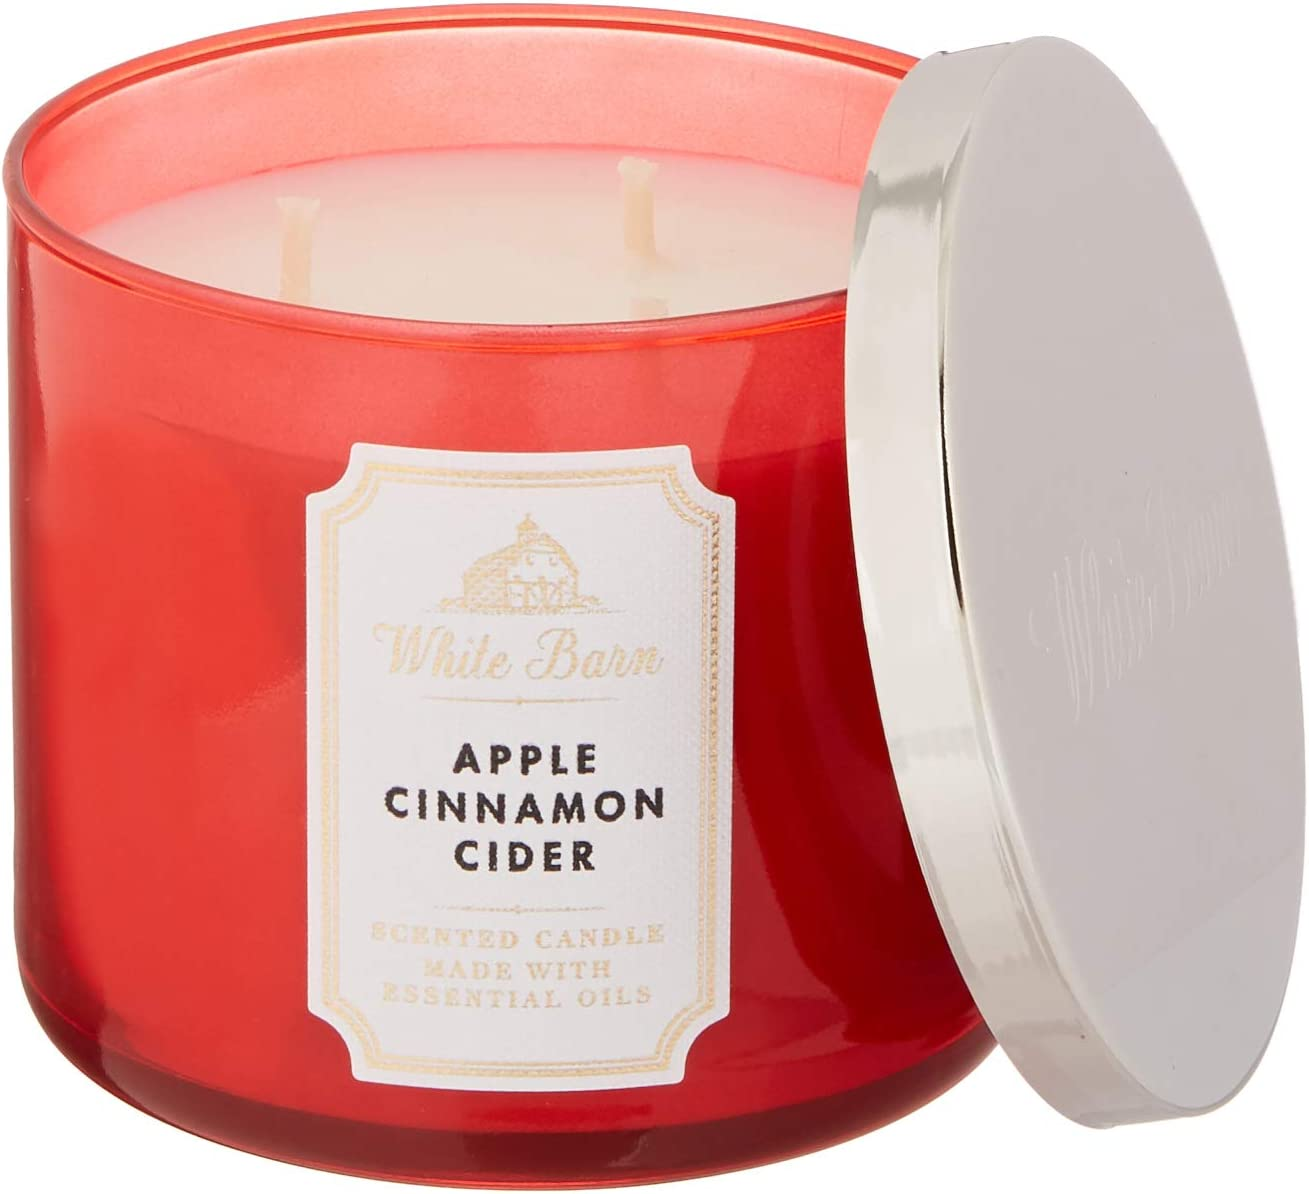 Whte Barn Bath and Body Works 3 Wick Scented Candle Apple Cinnamon Cider 14.5 Ounce